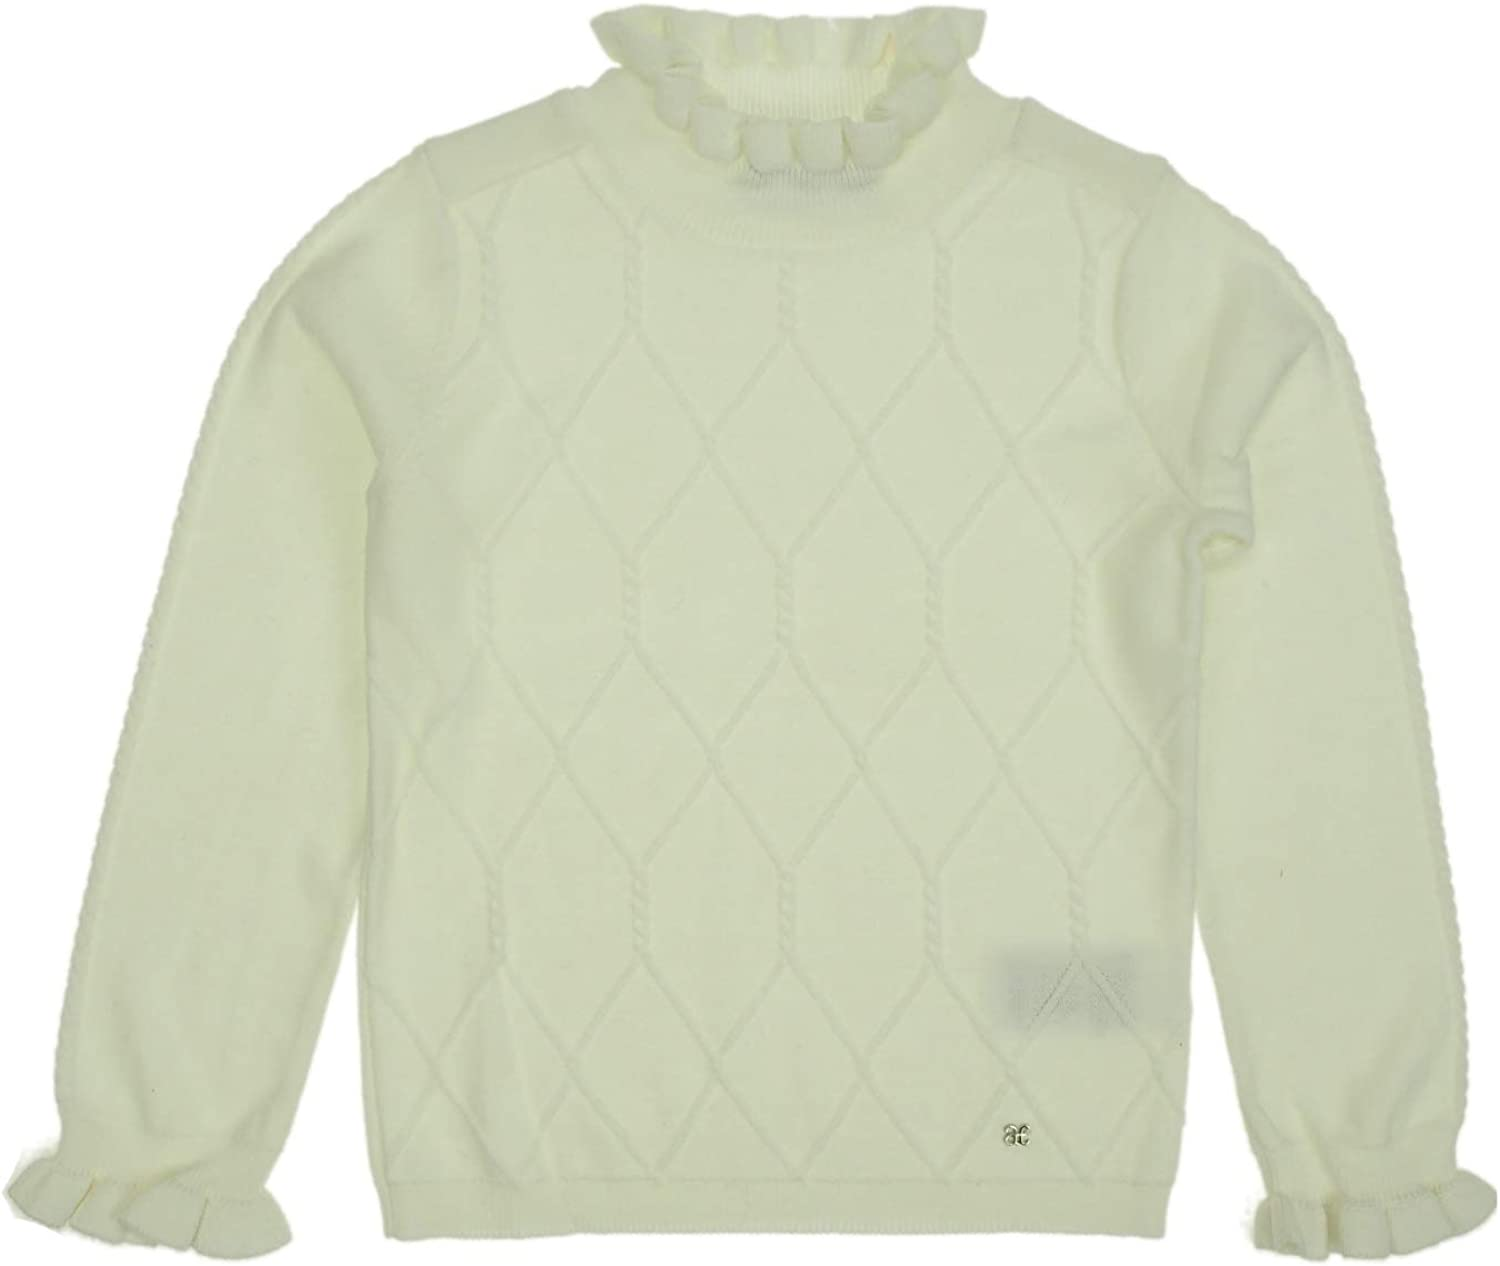 Abel & Lula - Knit Sweater for Girls - 5805, Off White